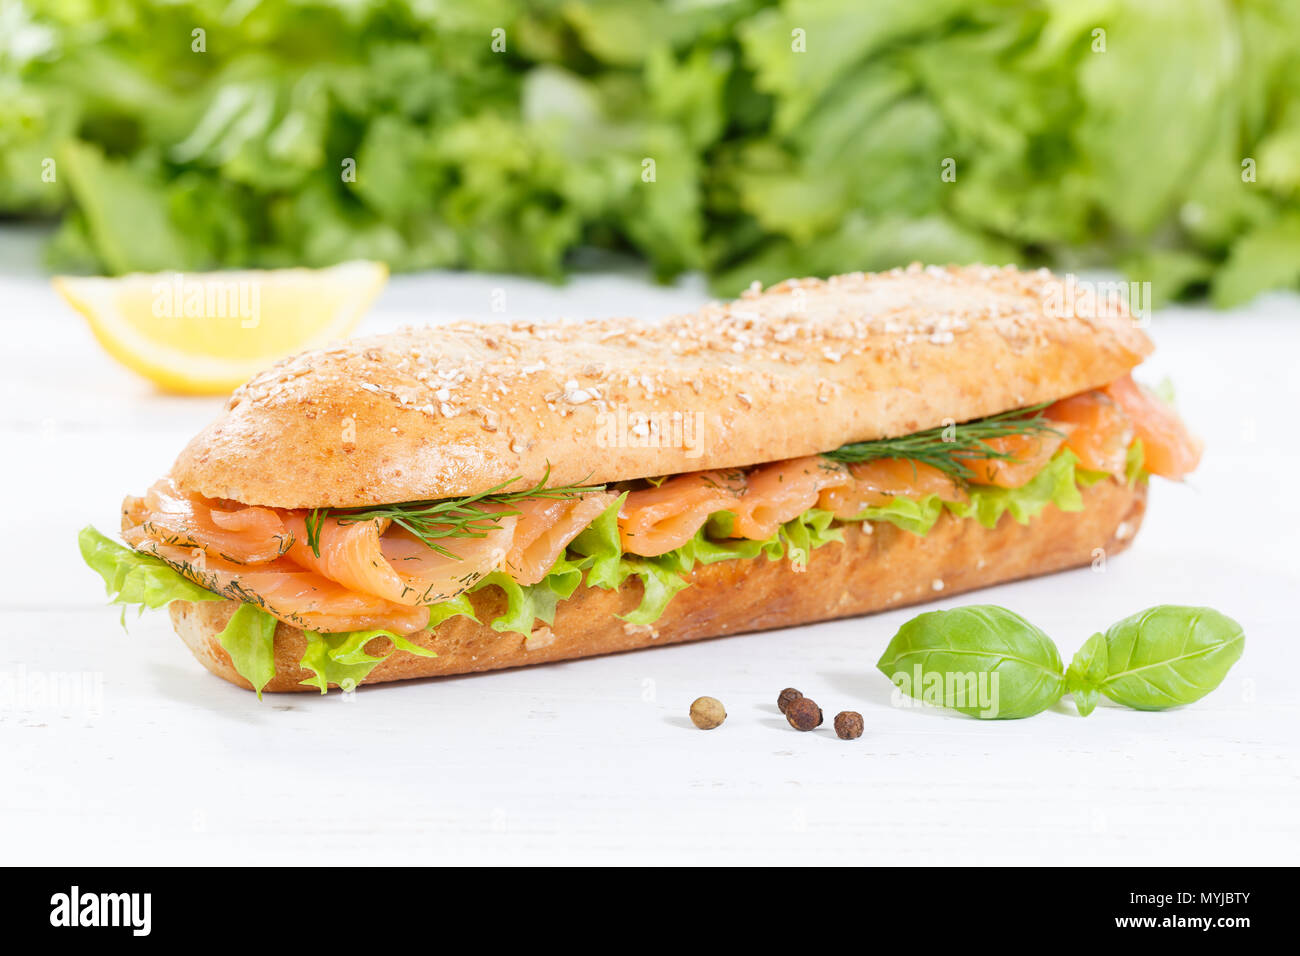 Sub sandwich whole grains baguette with smoked salmon fish on wooden board wood - Stock Image